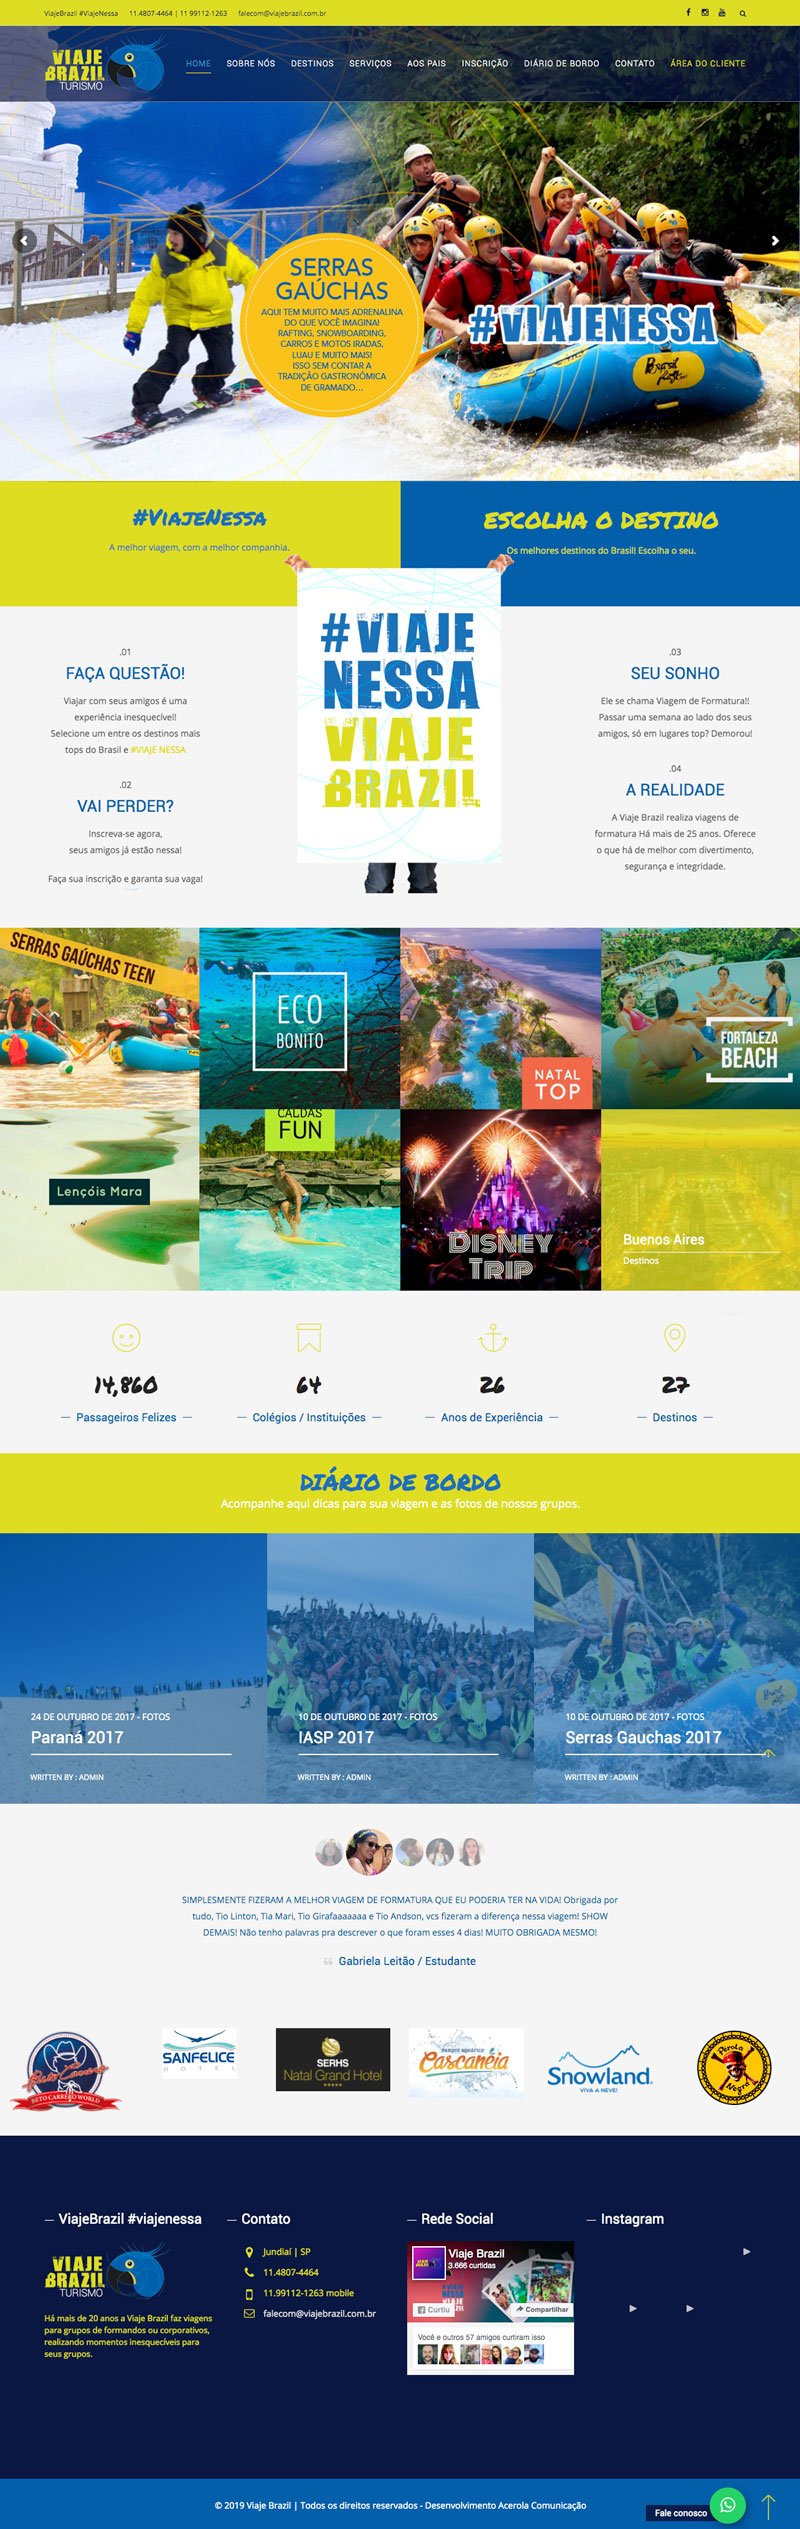 website_viajebrazil